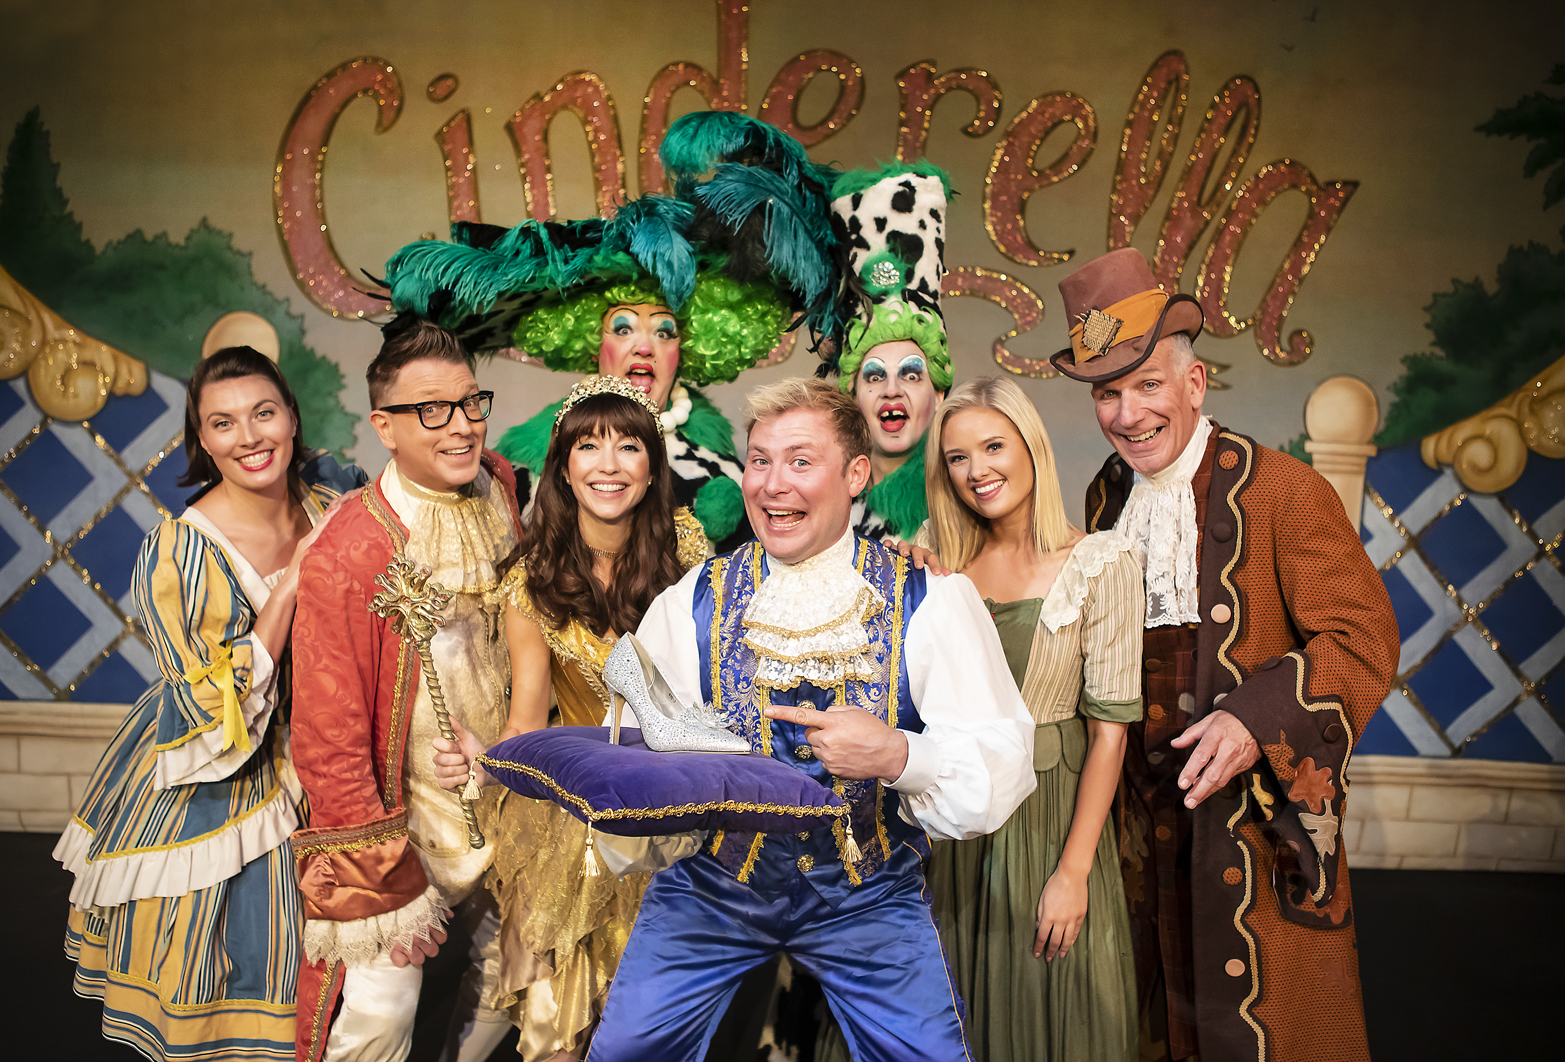 055_Lichfield Panto 2019 Press Launch_Pamela Raith Photography